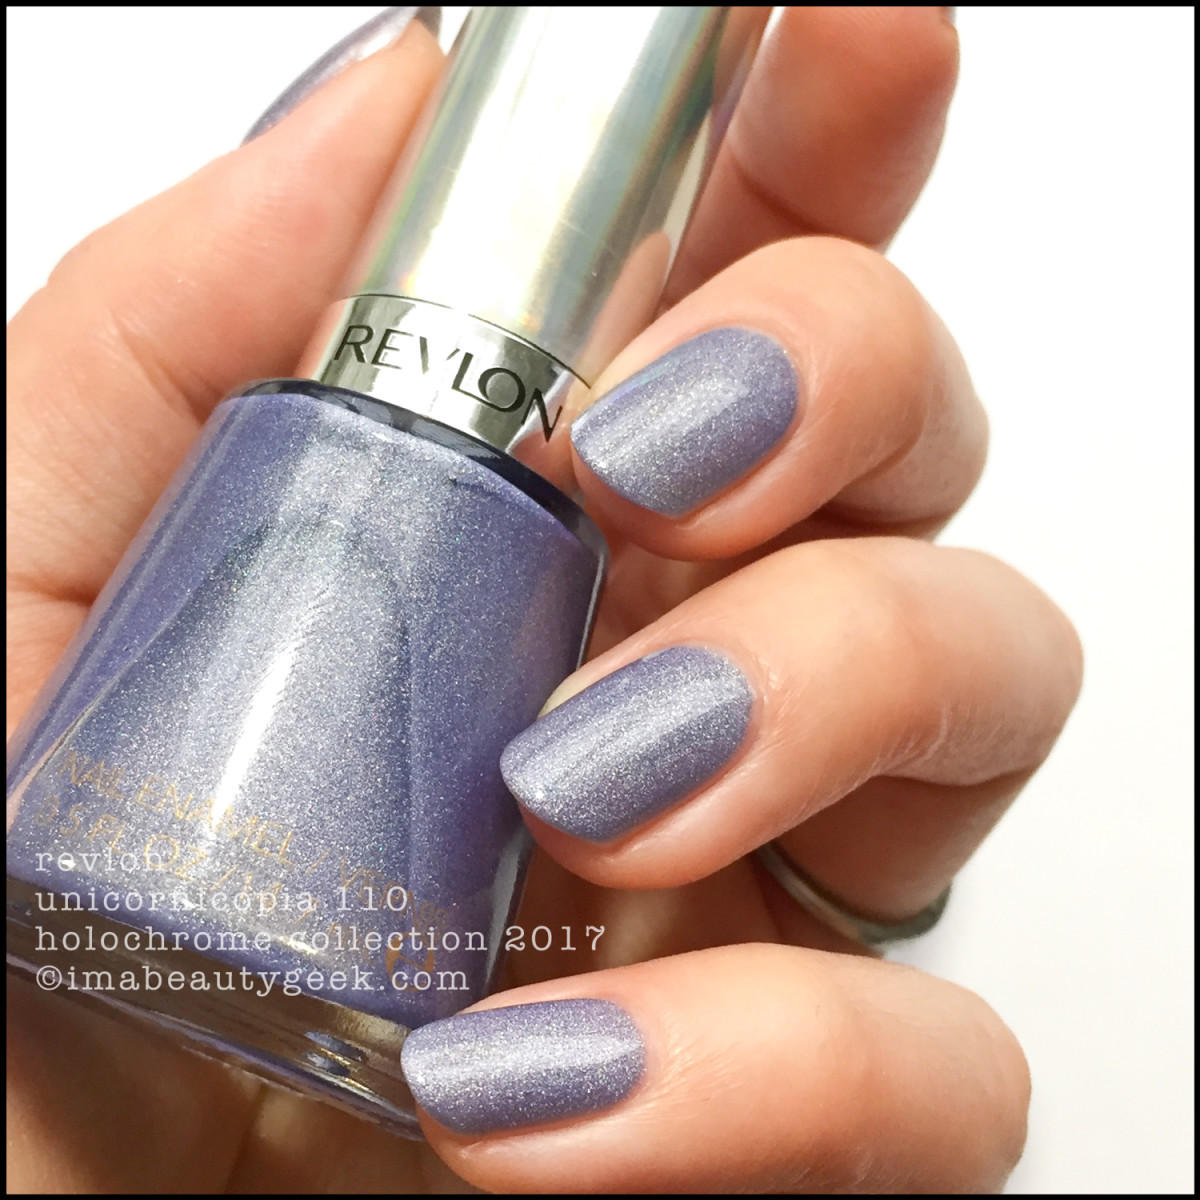 Revlon Unicornicopia 110 Holochrome Collection Swatches